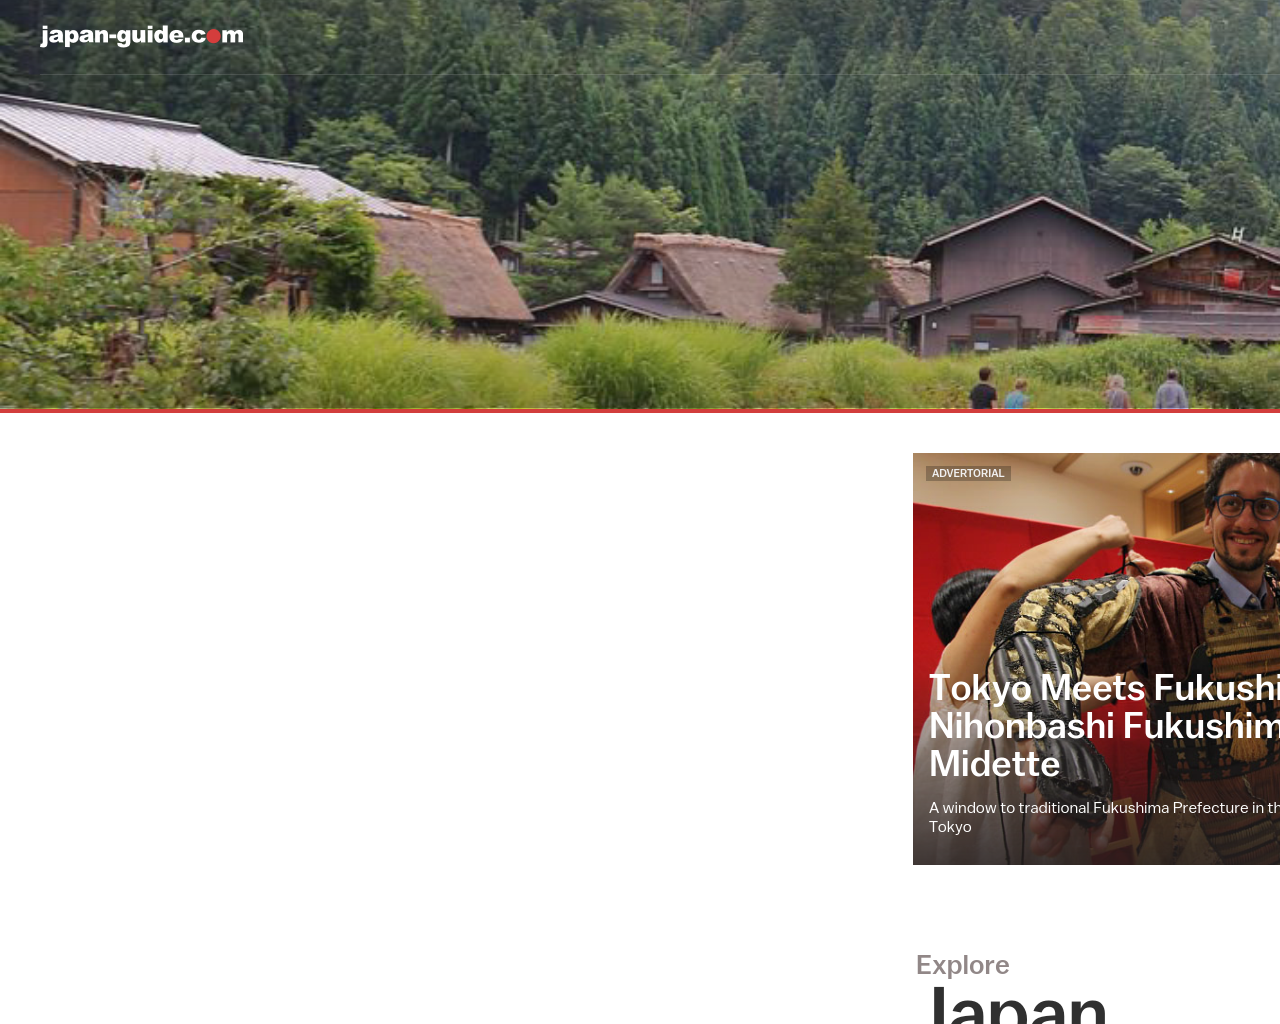 japan-guide.com-Advertising-Reviews-Pricing